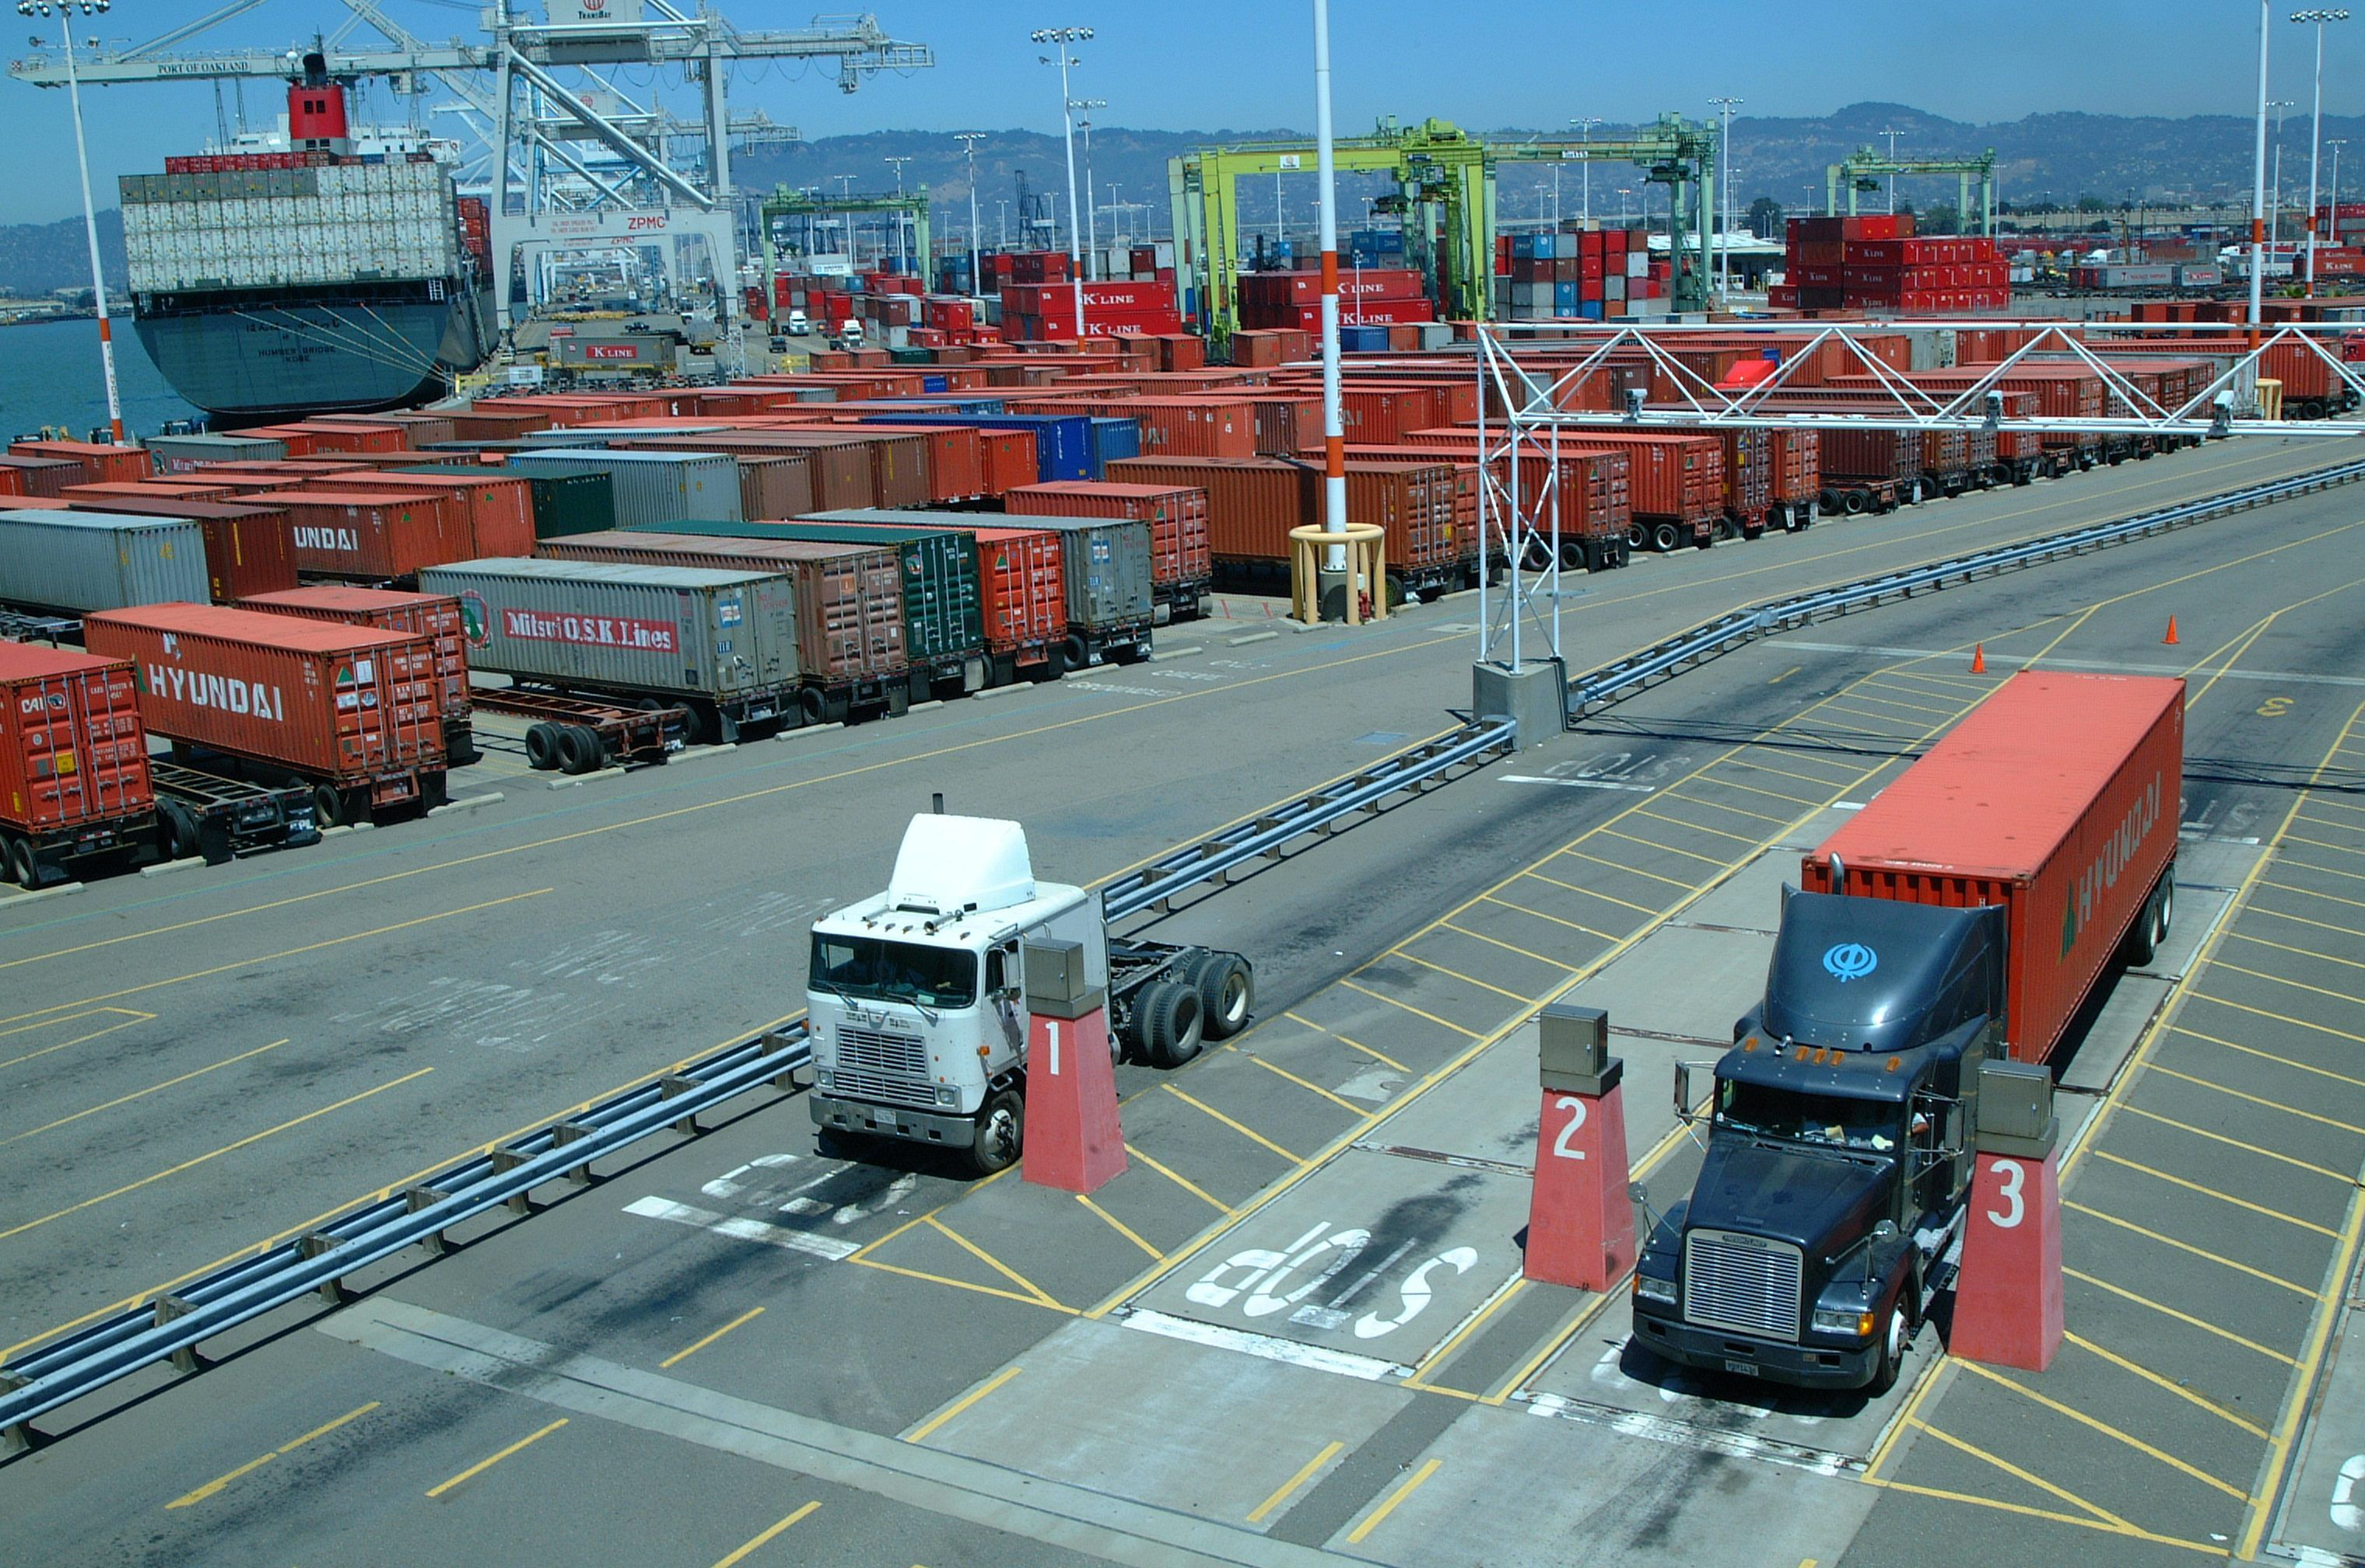 Starting Monday, Oakland port will require truck appointments